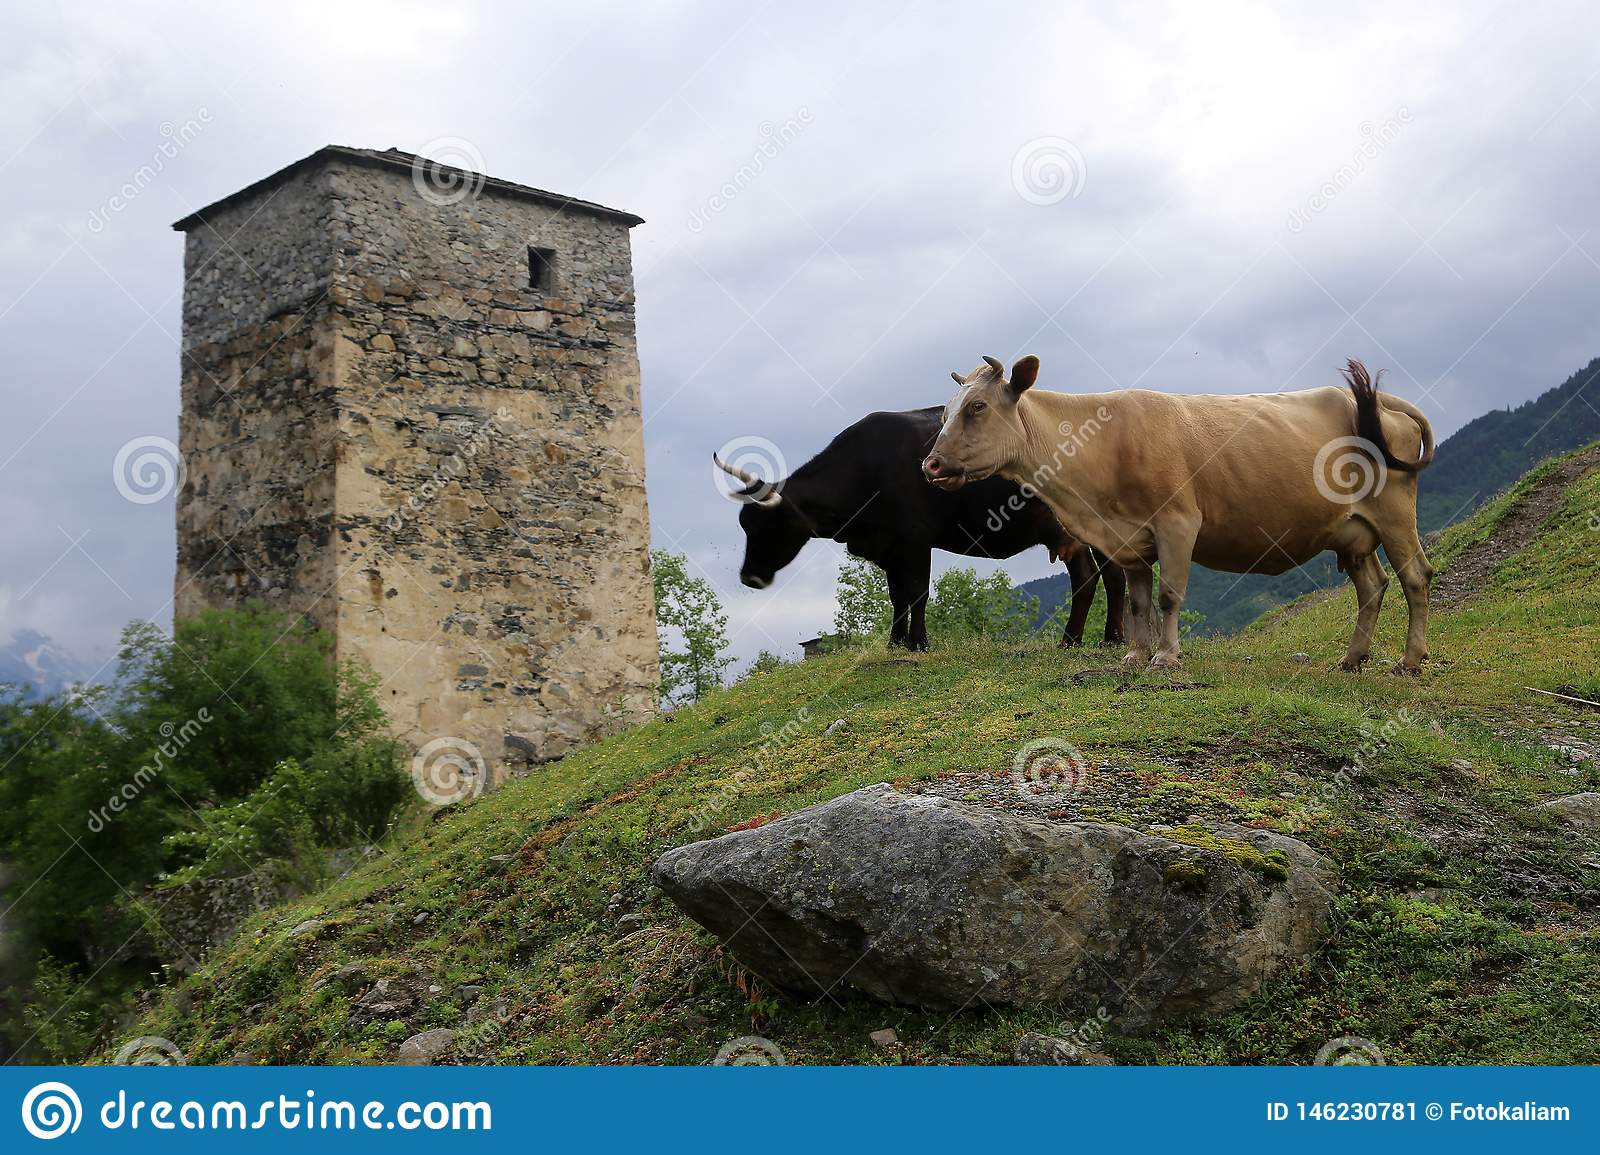 Two cows on a hillside, against the backdrop of the Svan tower